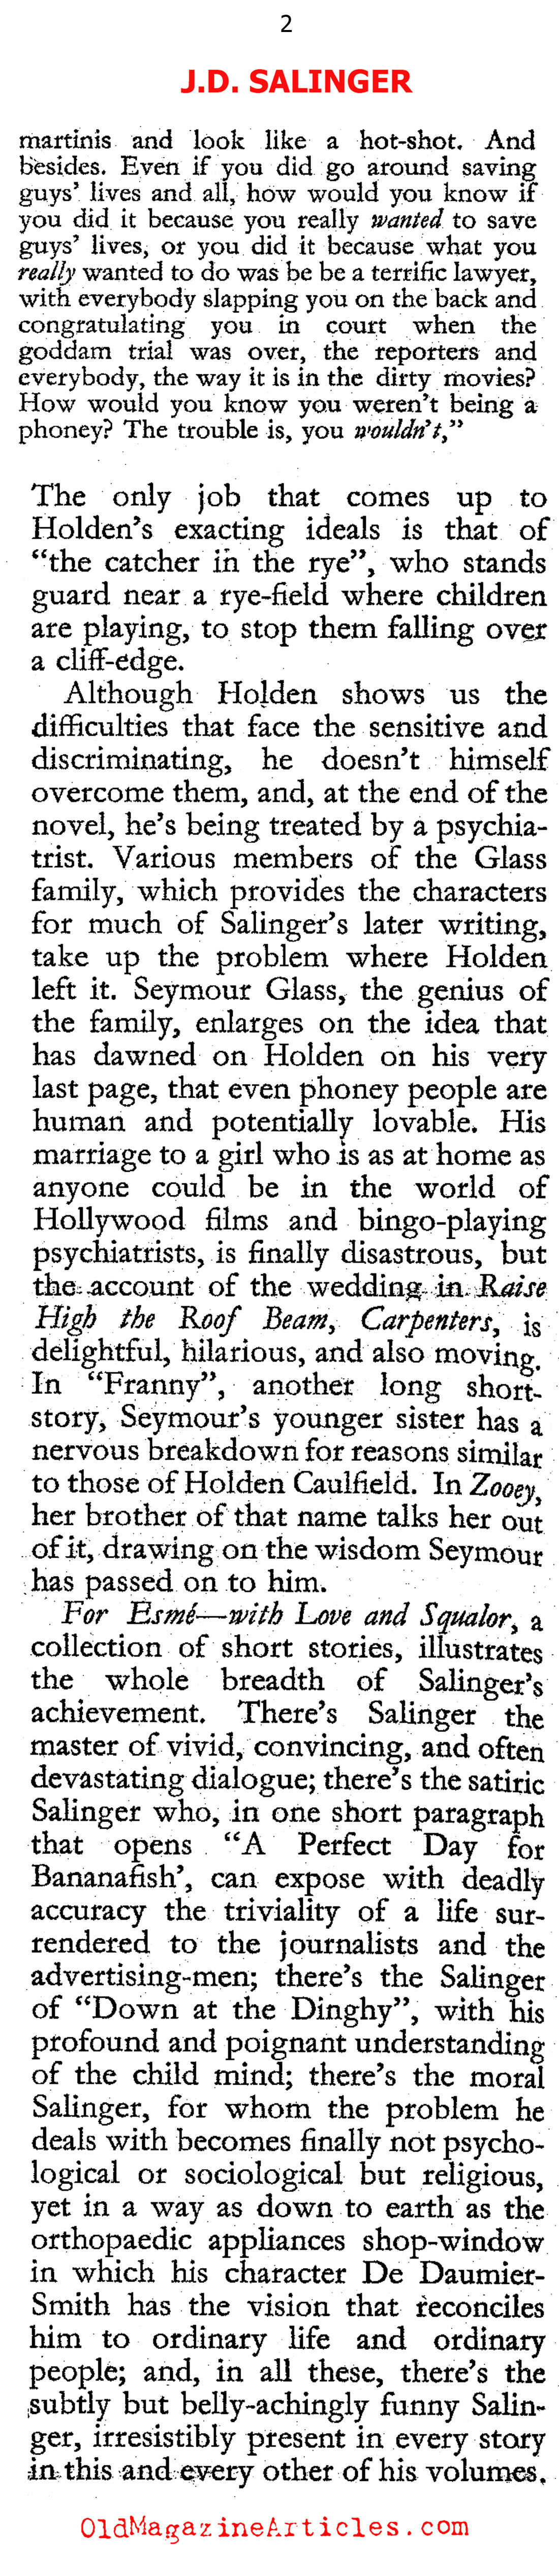 The Work of J.D. Salinger (The Hibbert Journal, 1964)